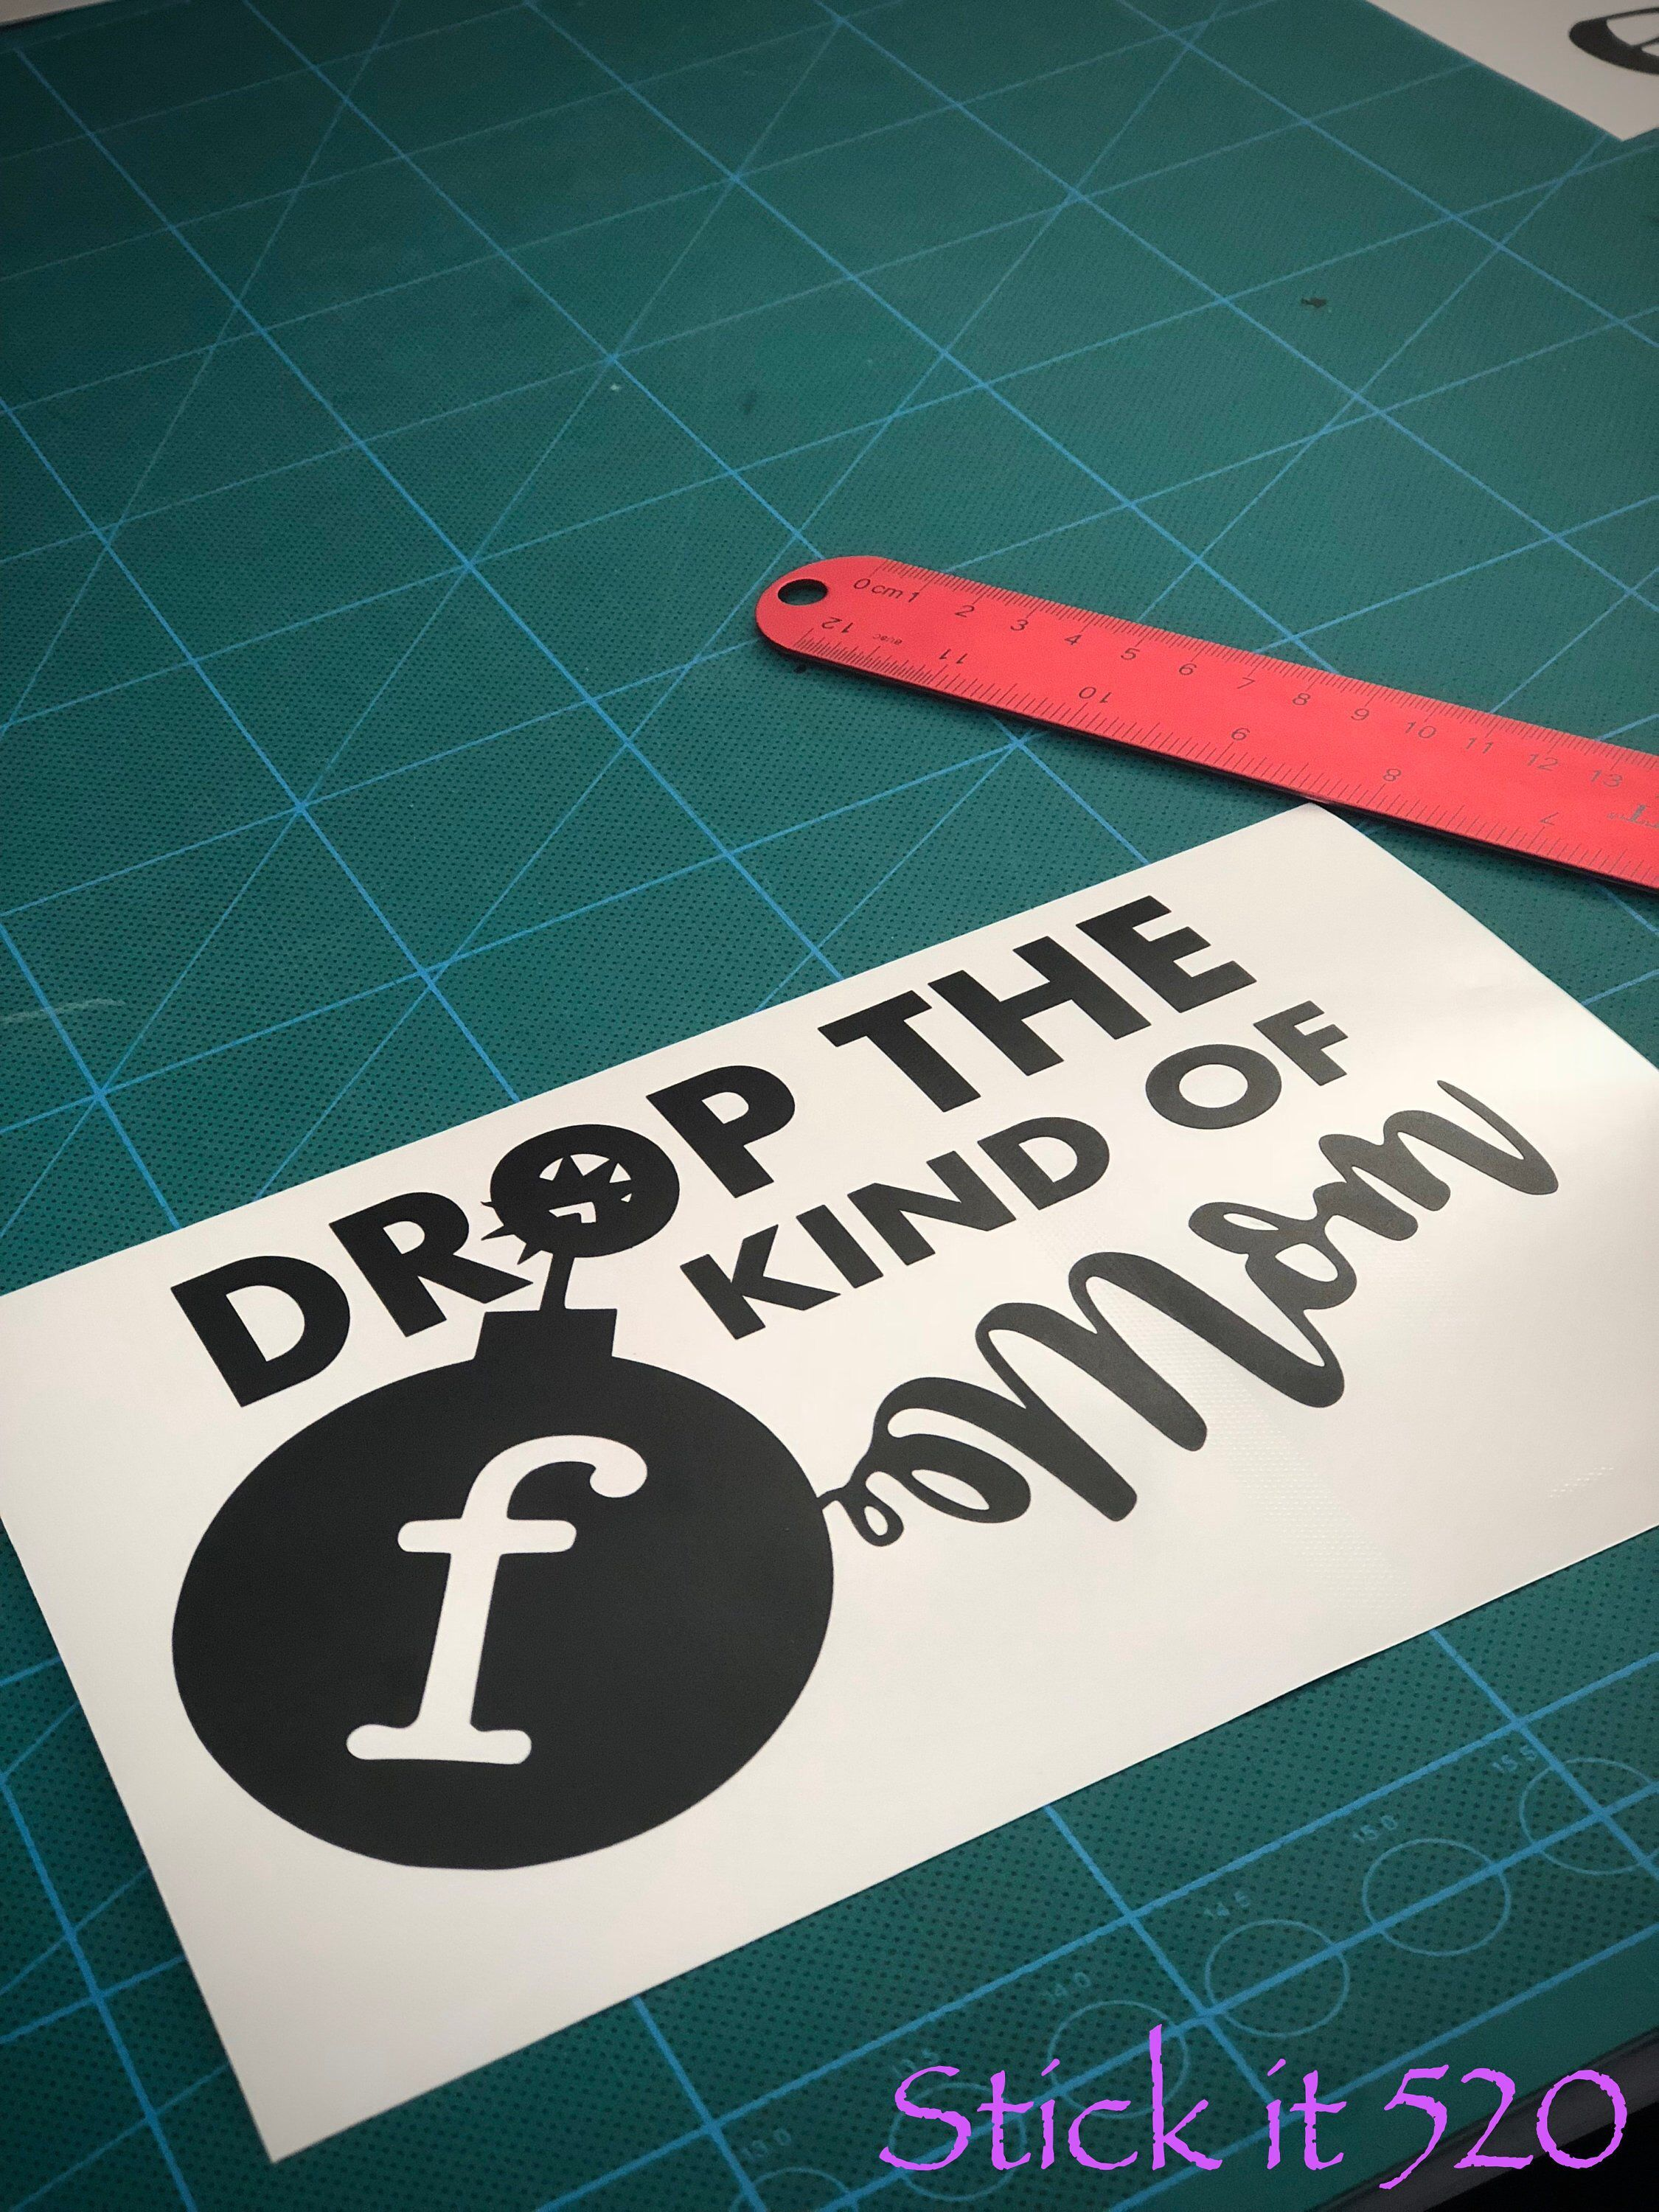 Drop the f bomb kind of mom funny mom decal sticker laptop sticker mom decal dropthefbombmom momdecal dropthefbomb momlaptopdecal momlaptopsticker